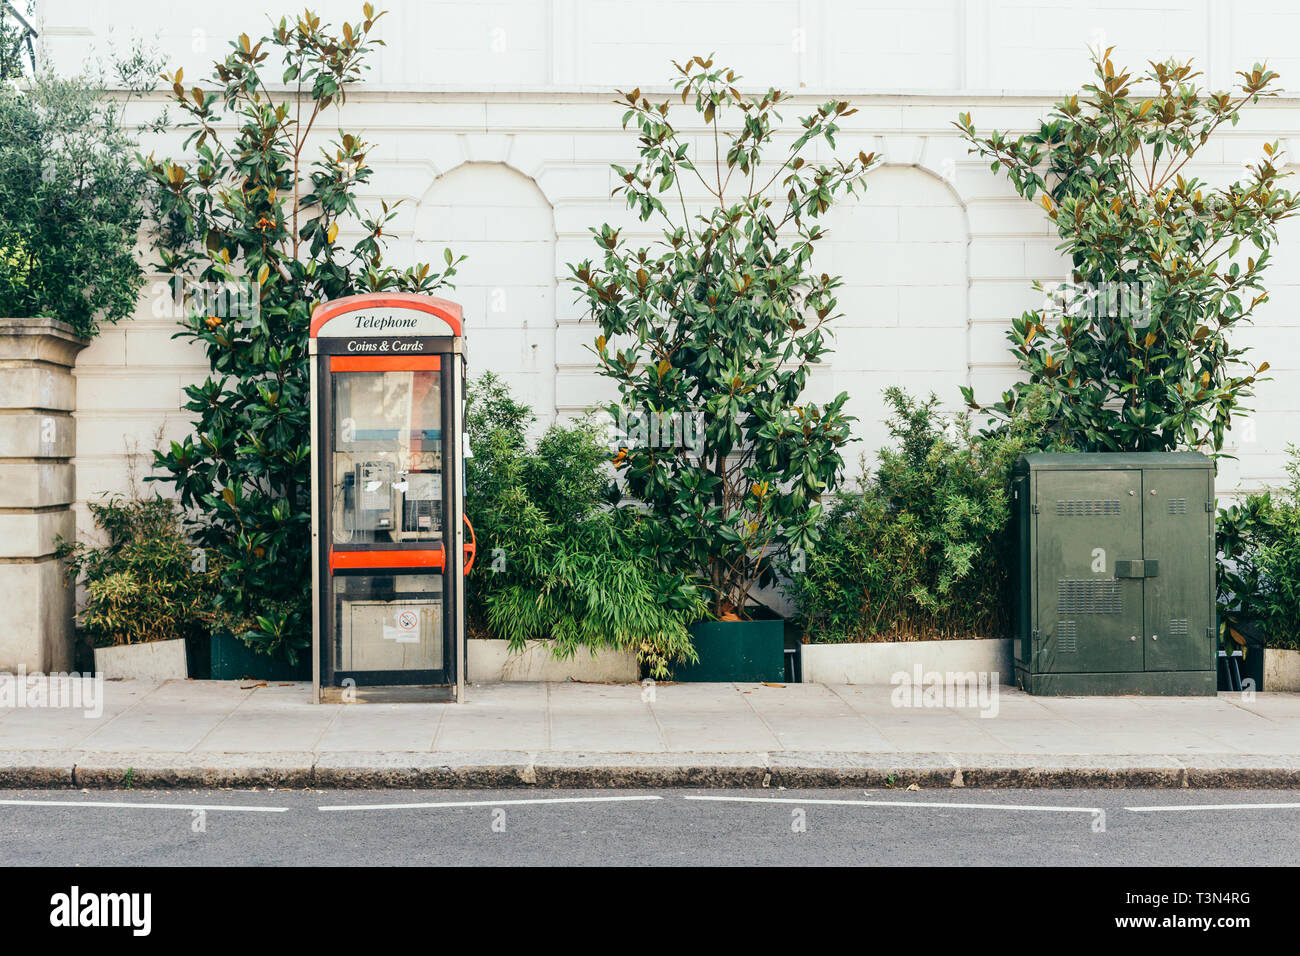 Telephone Box and green transformer box on Kensington Park Road in Notting Hill, London, UK - Stock Image